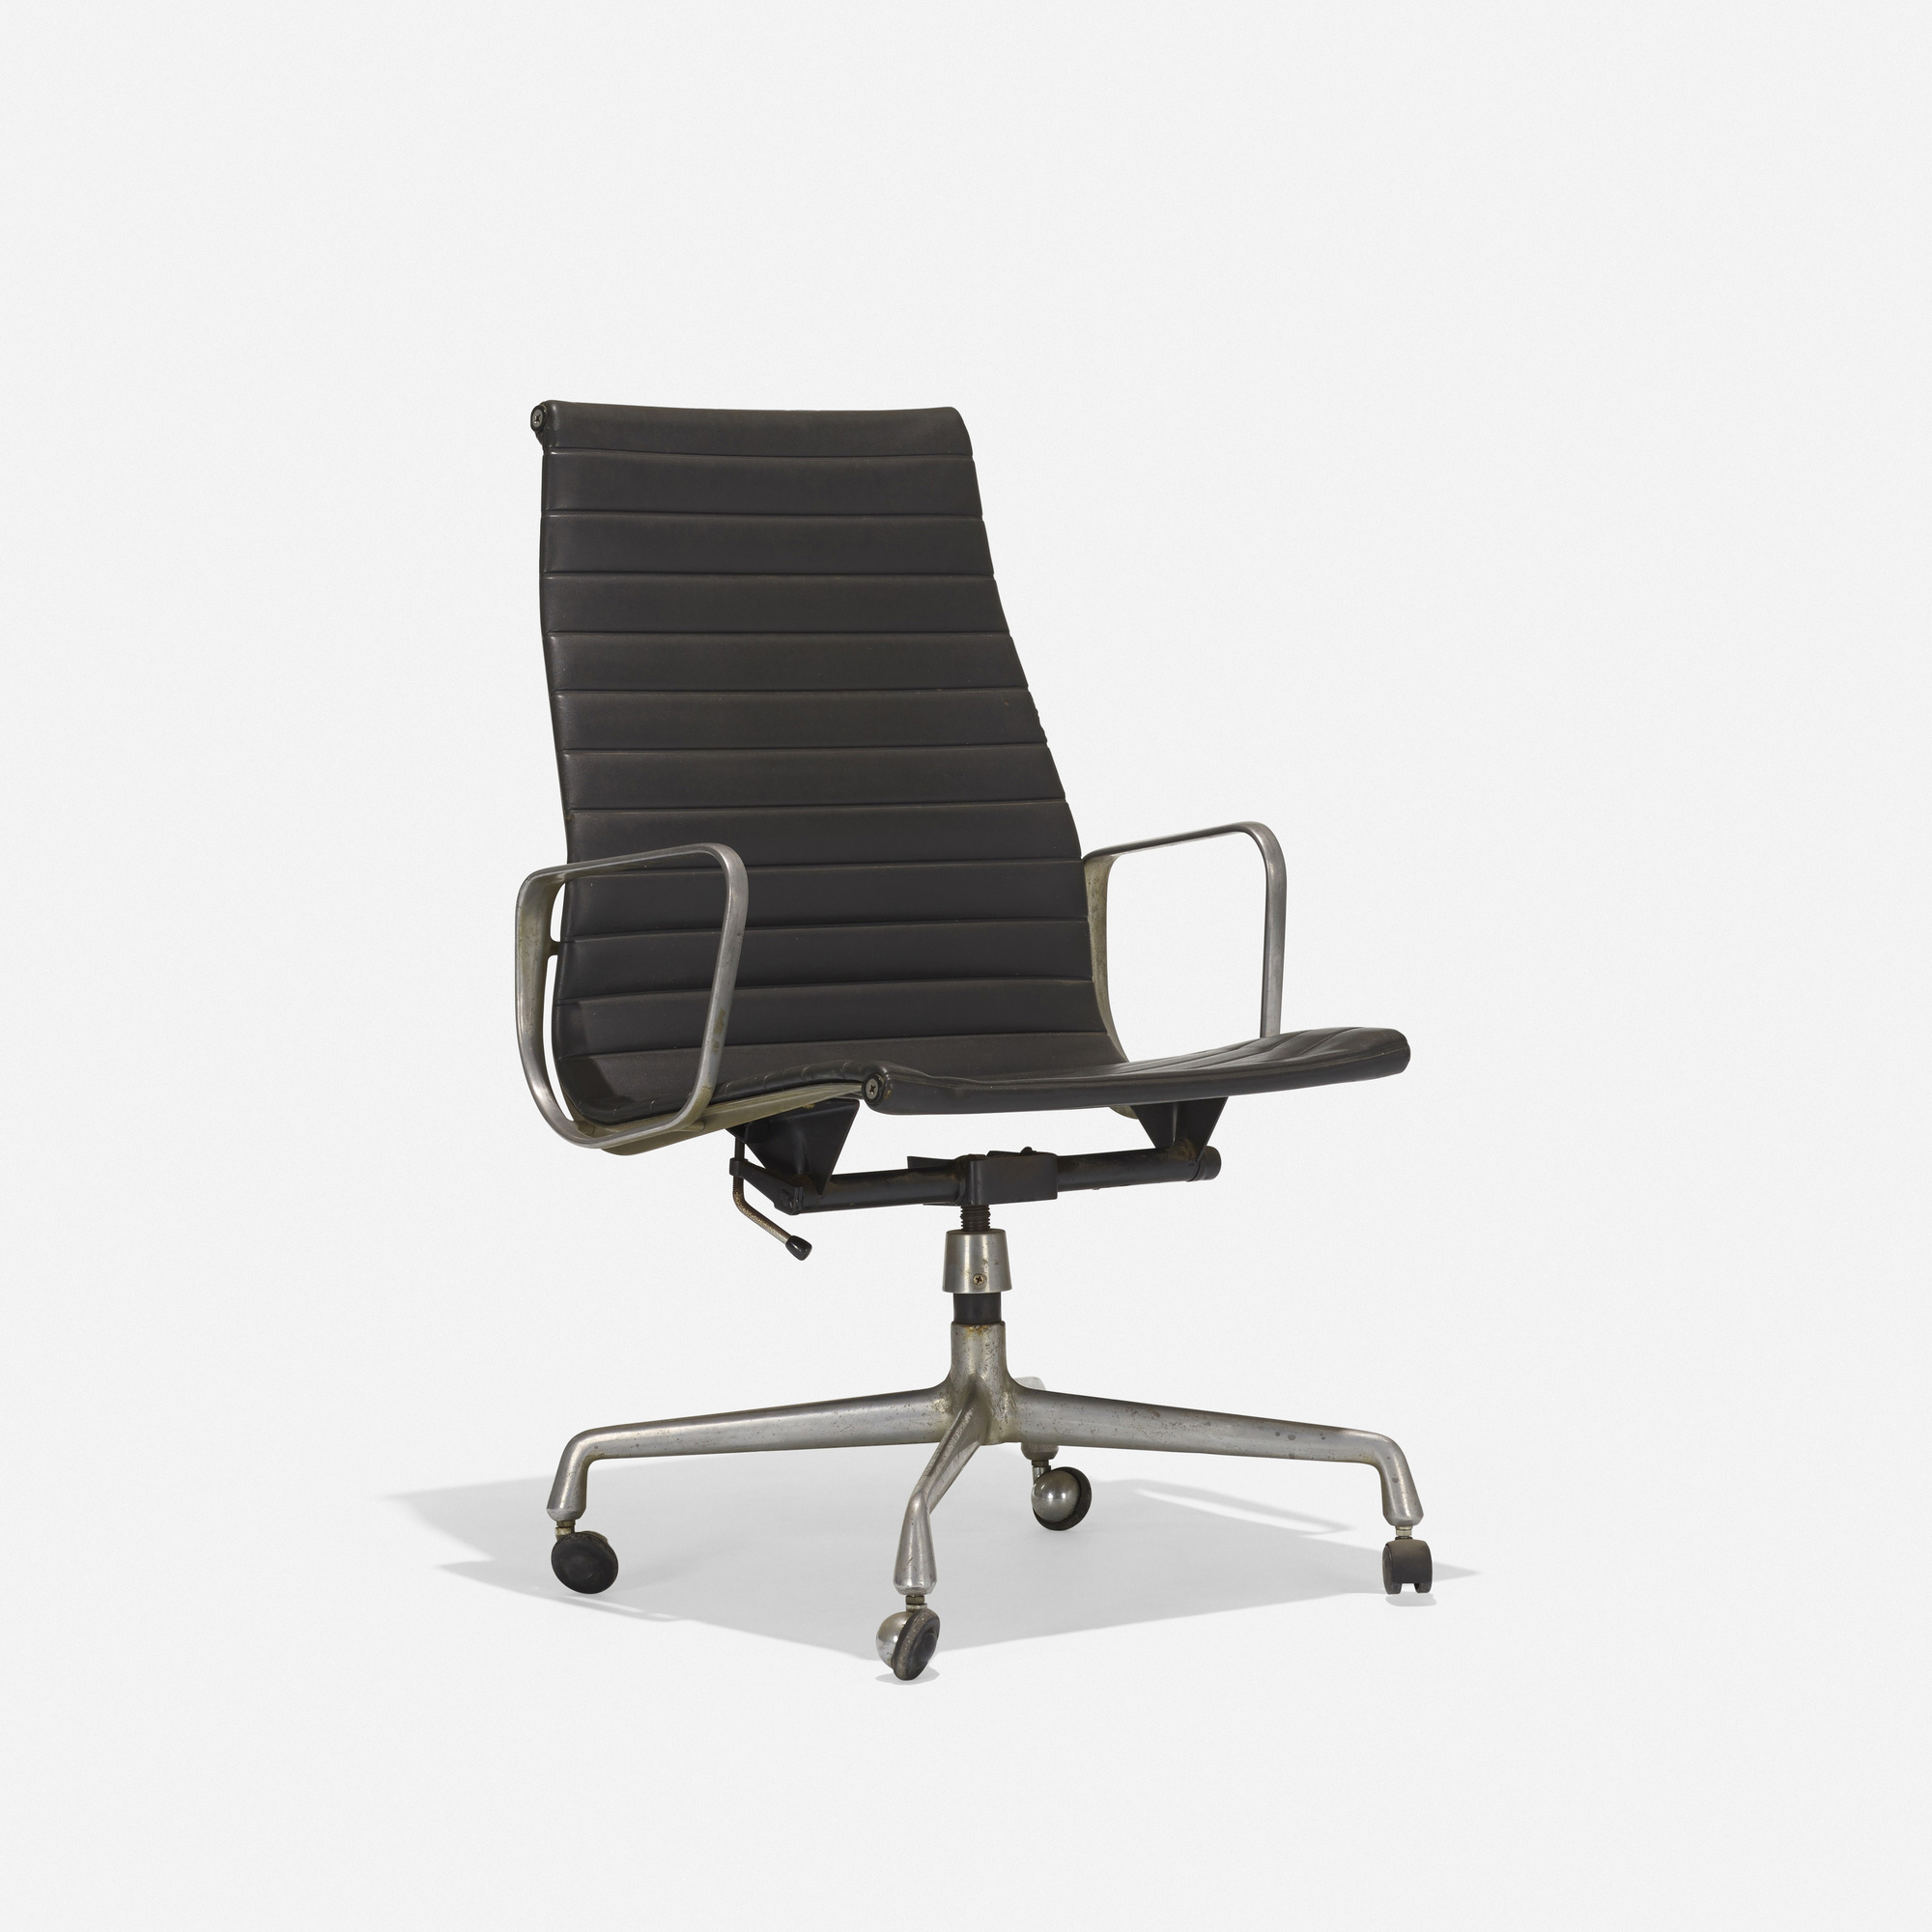 221: Charles and Ray Eames / Aluminum Group lounge chair (2 of 3)